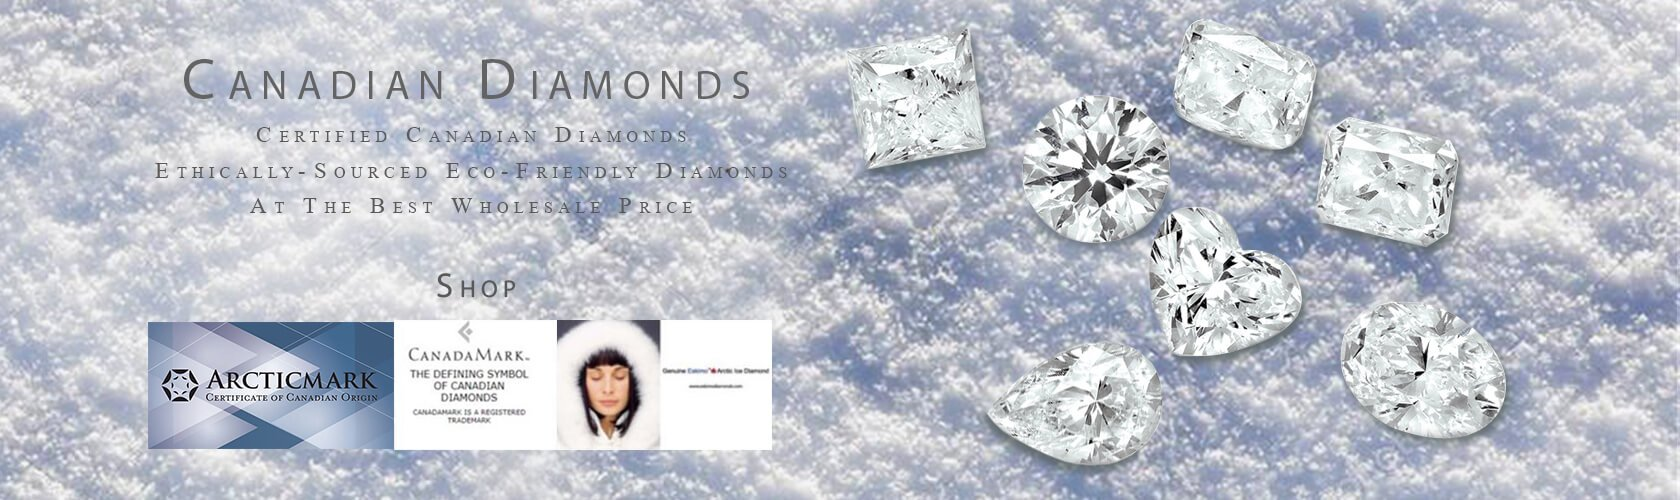 Canadian Diamonds 1680x500